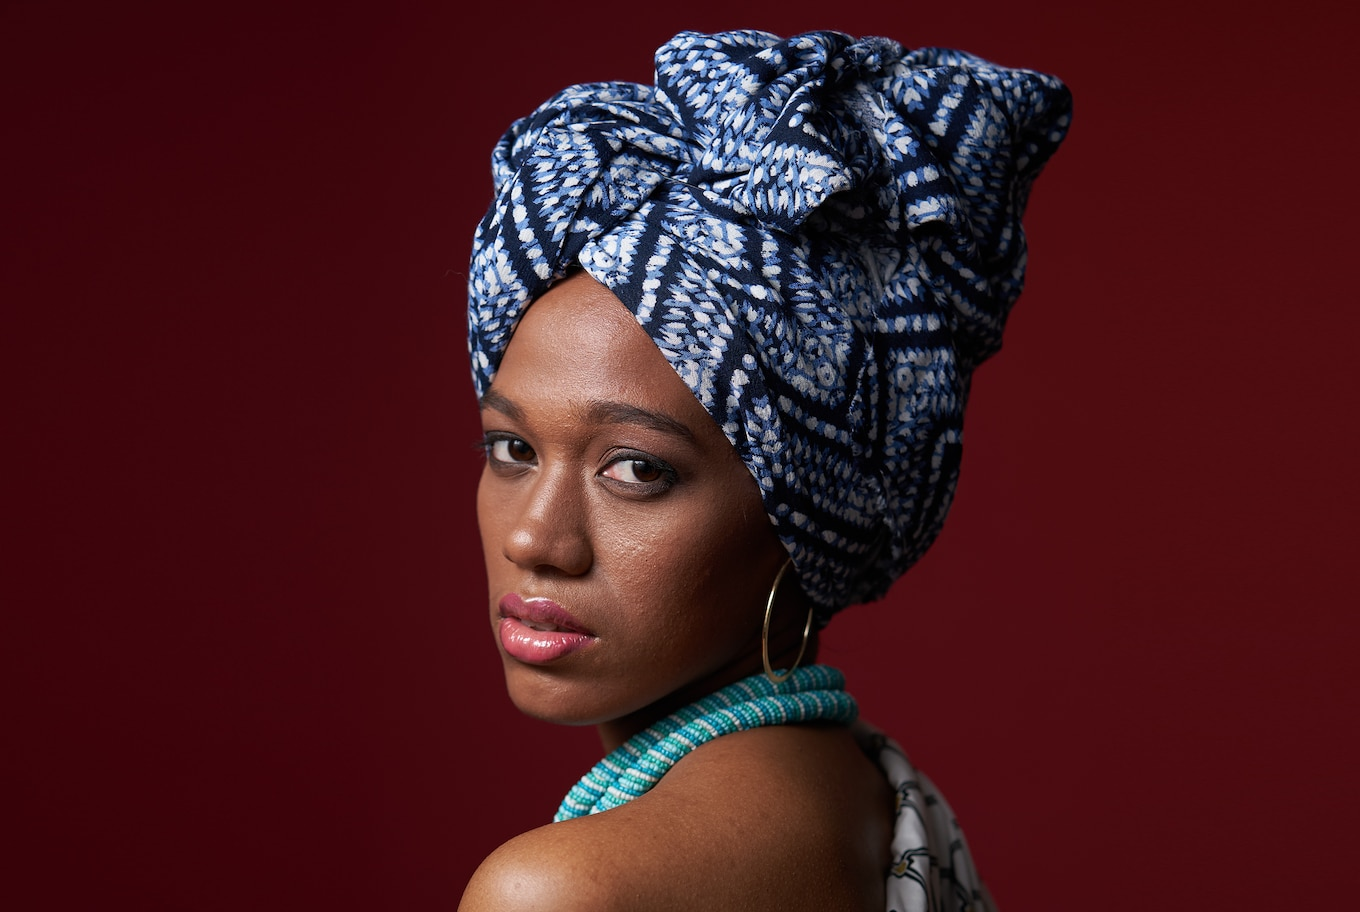 portrait-african-girl-with-head-scarf-alpha-7RIII